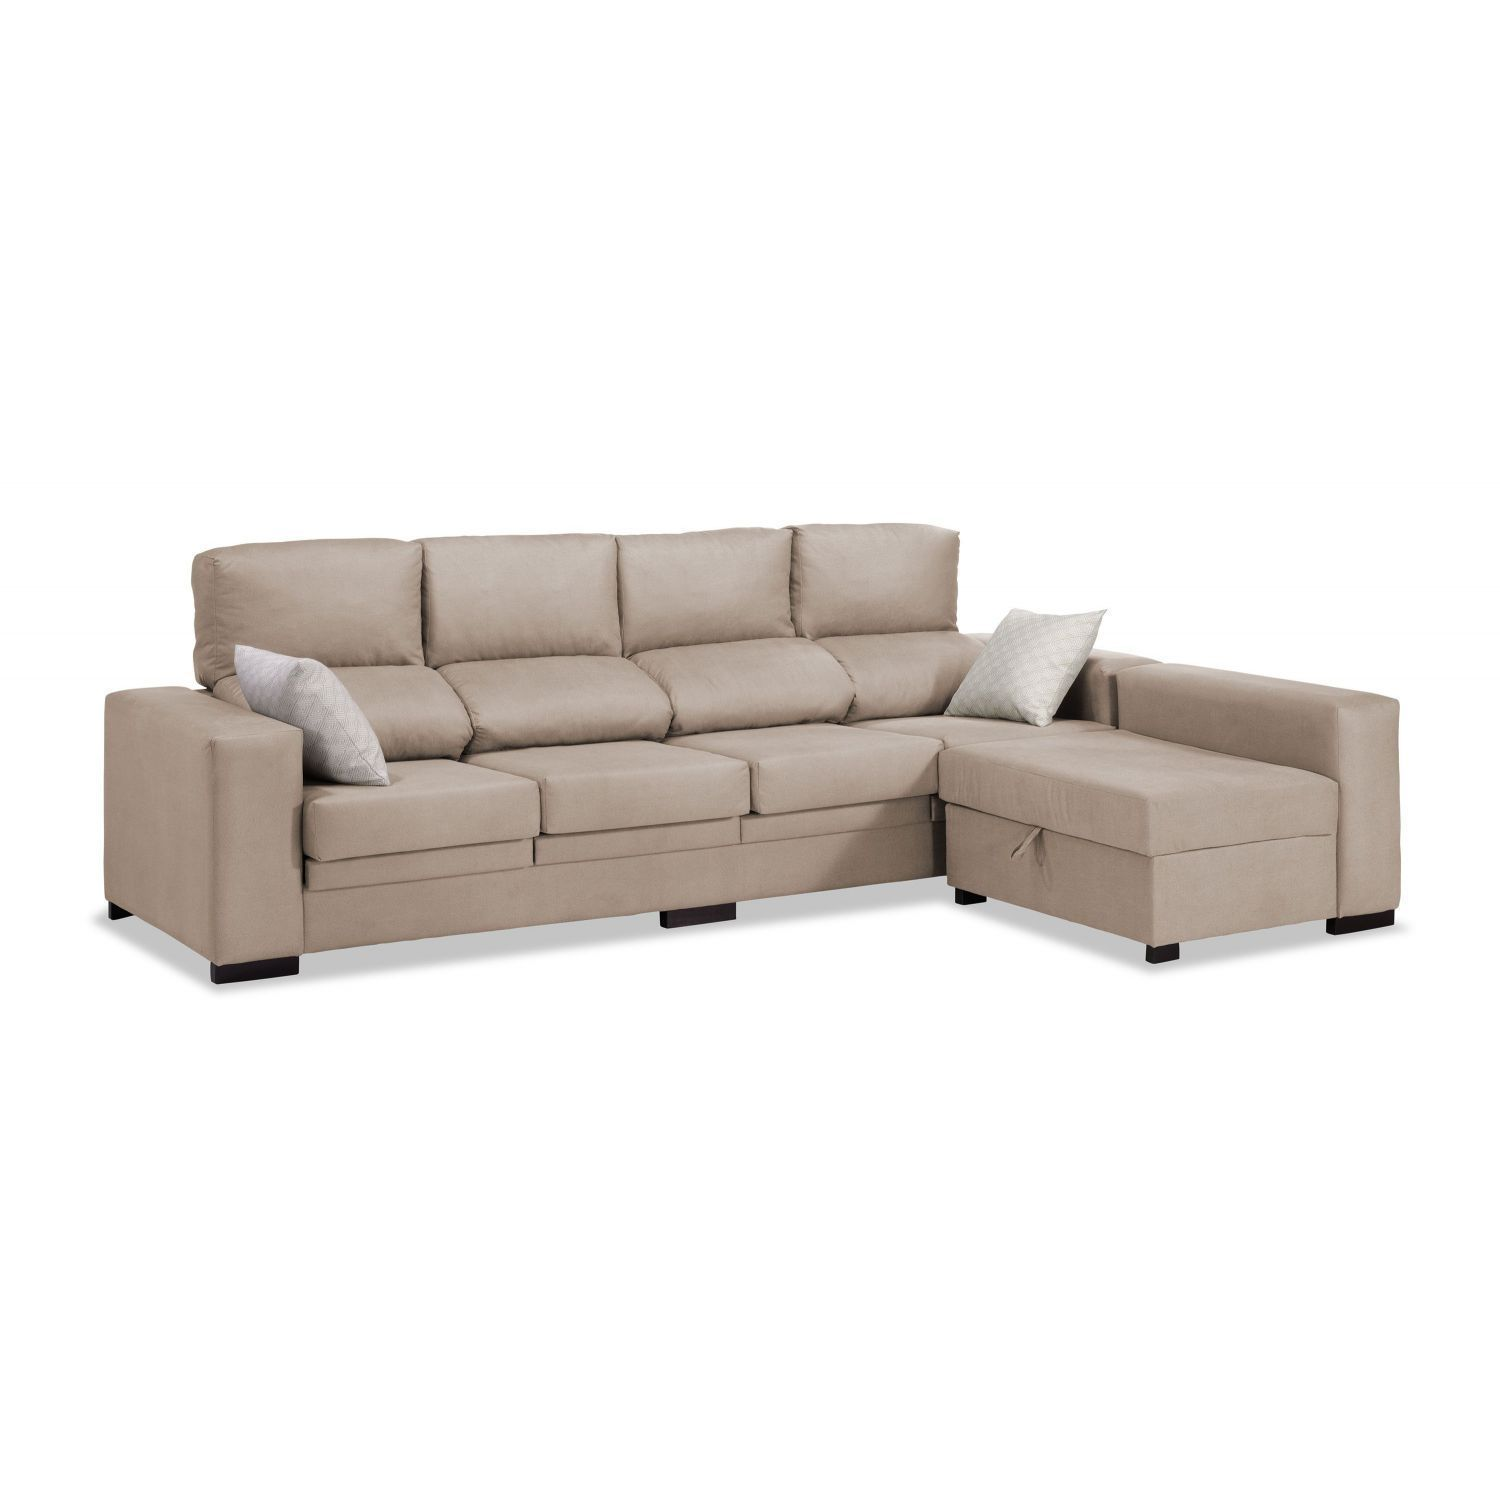 sof chaise longue 4 plazas beige reclinable extensible